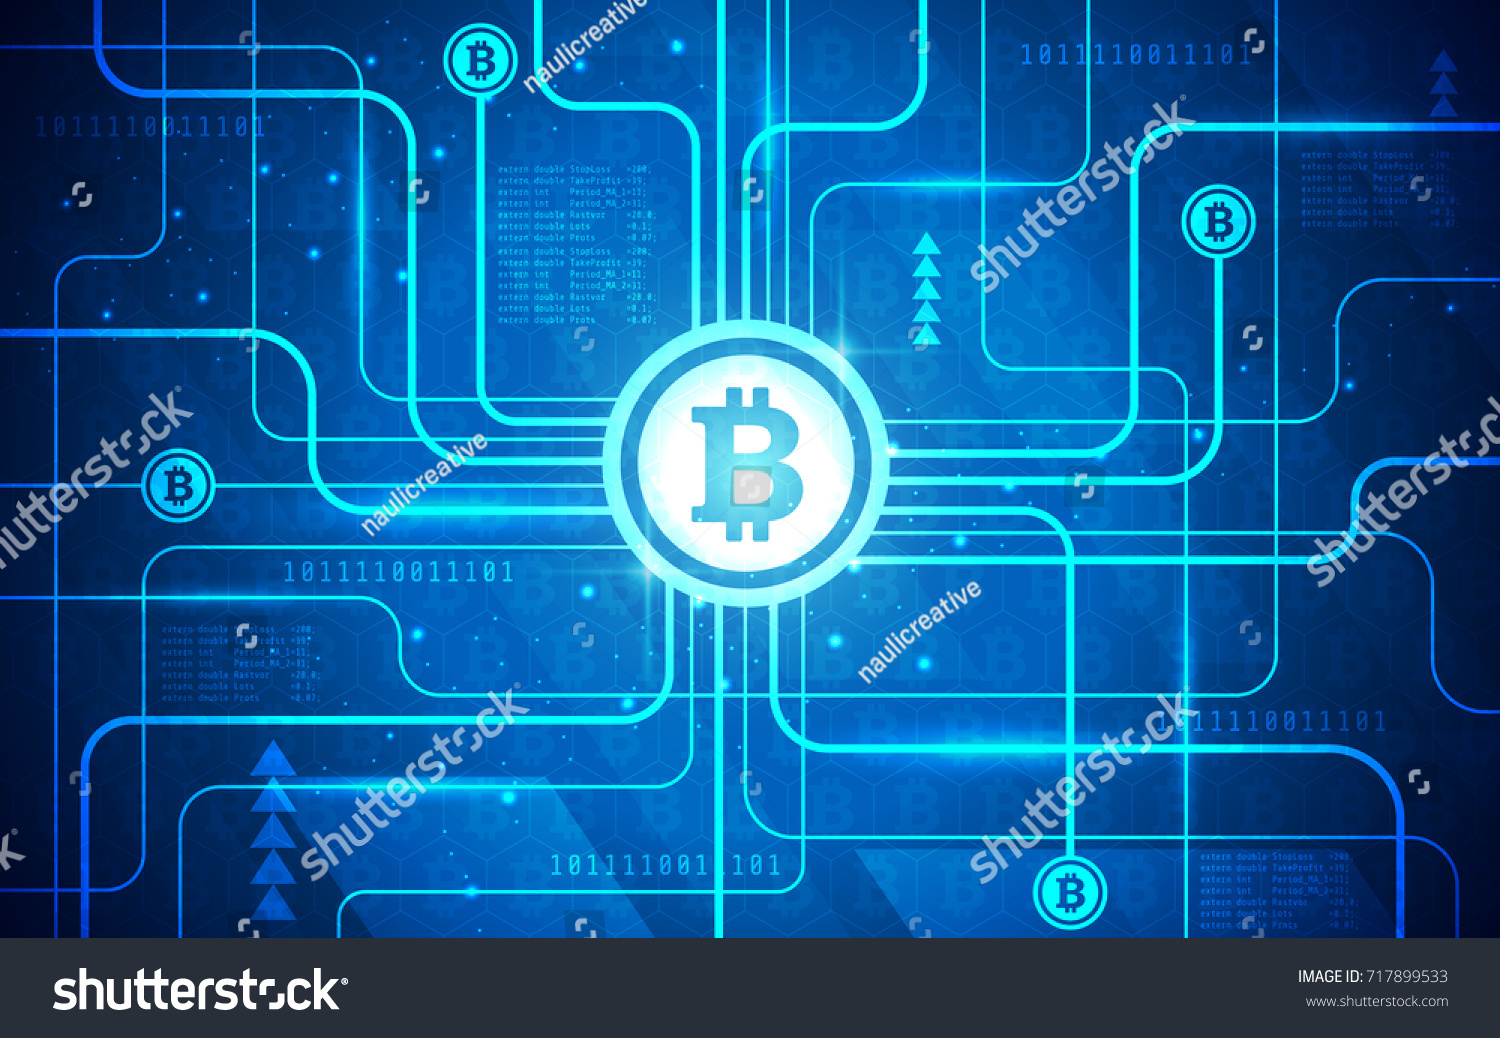 Modern Ultra Hd Bitcoin Mining Network Stock Vector Royalty Free 717899533